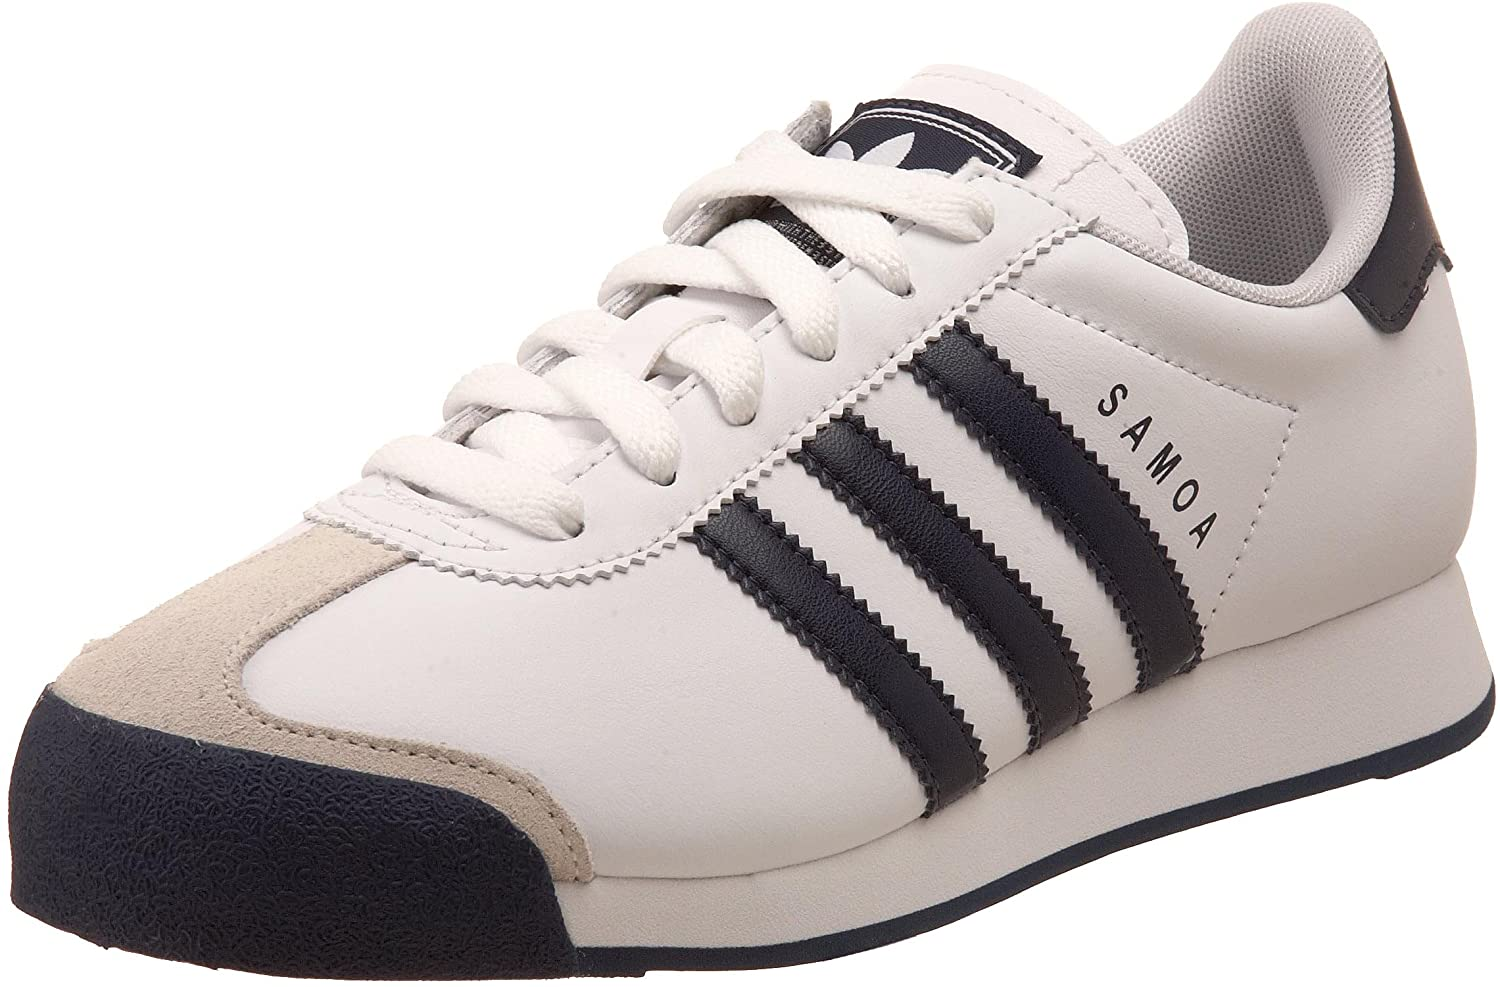 adidas Originals Samoa Sneaker (Little Kid/Big Kid),White/New